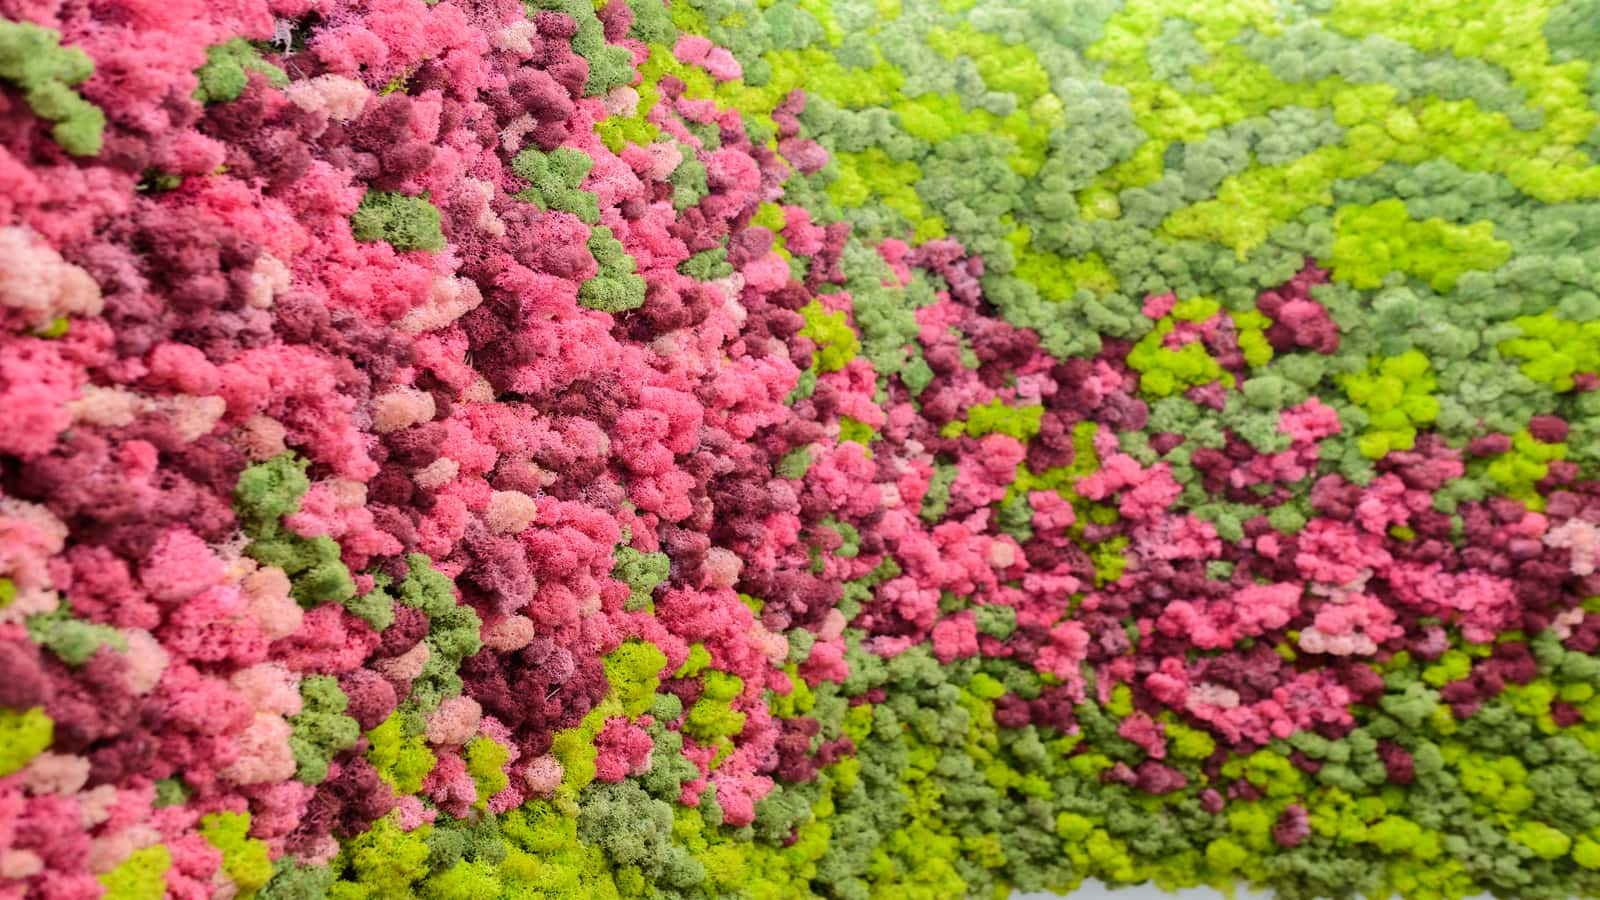 Stylish colorful reindeer moss